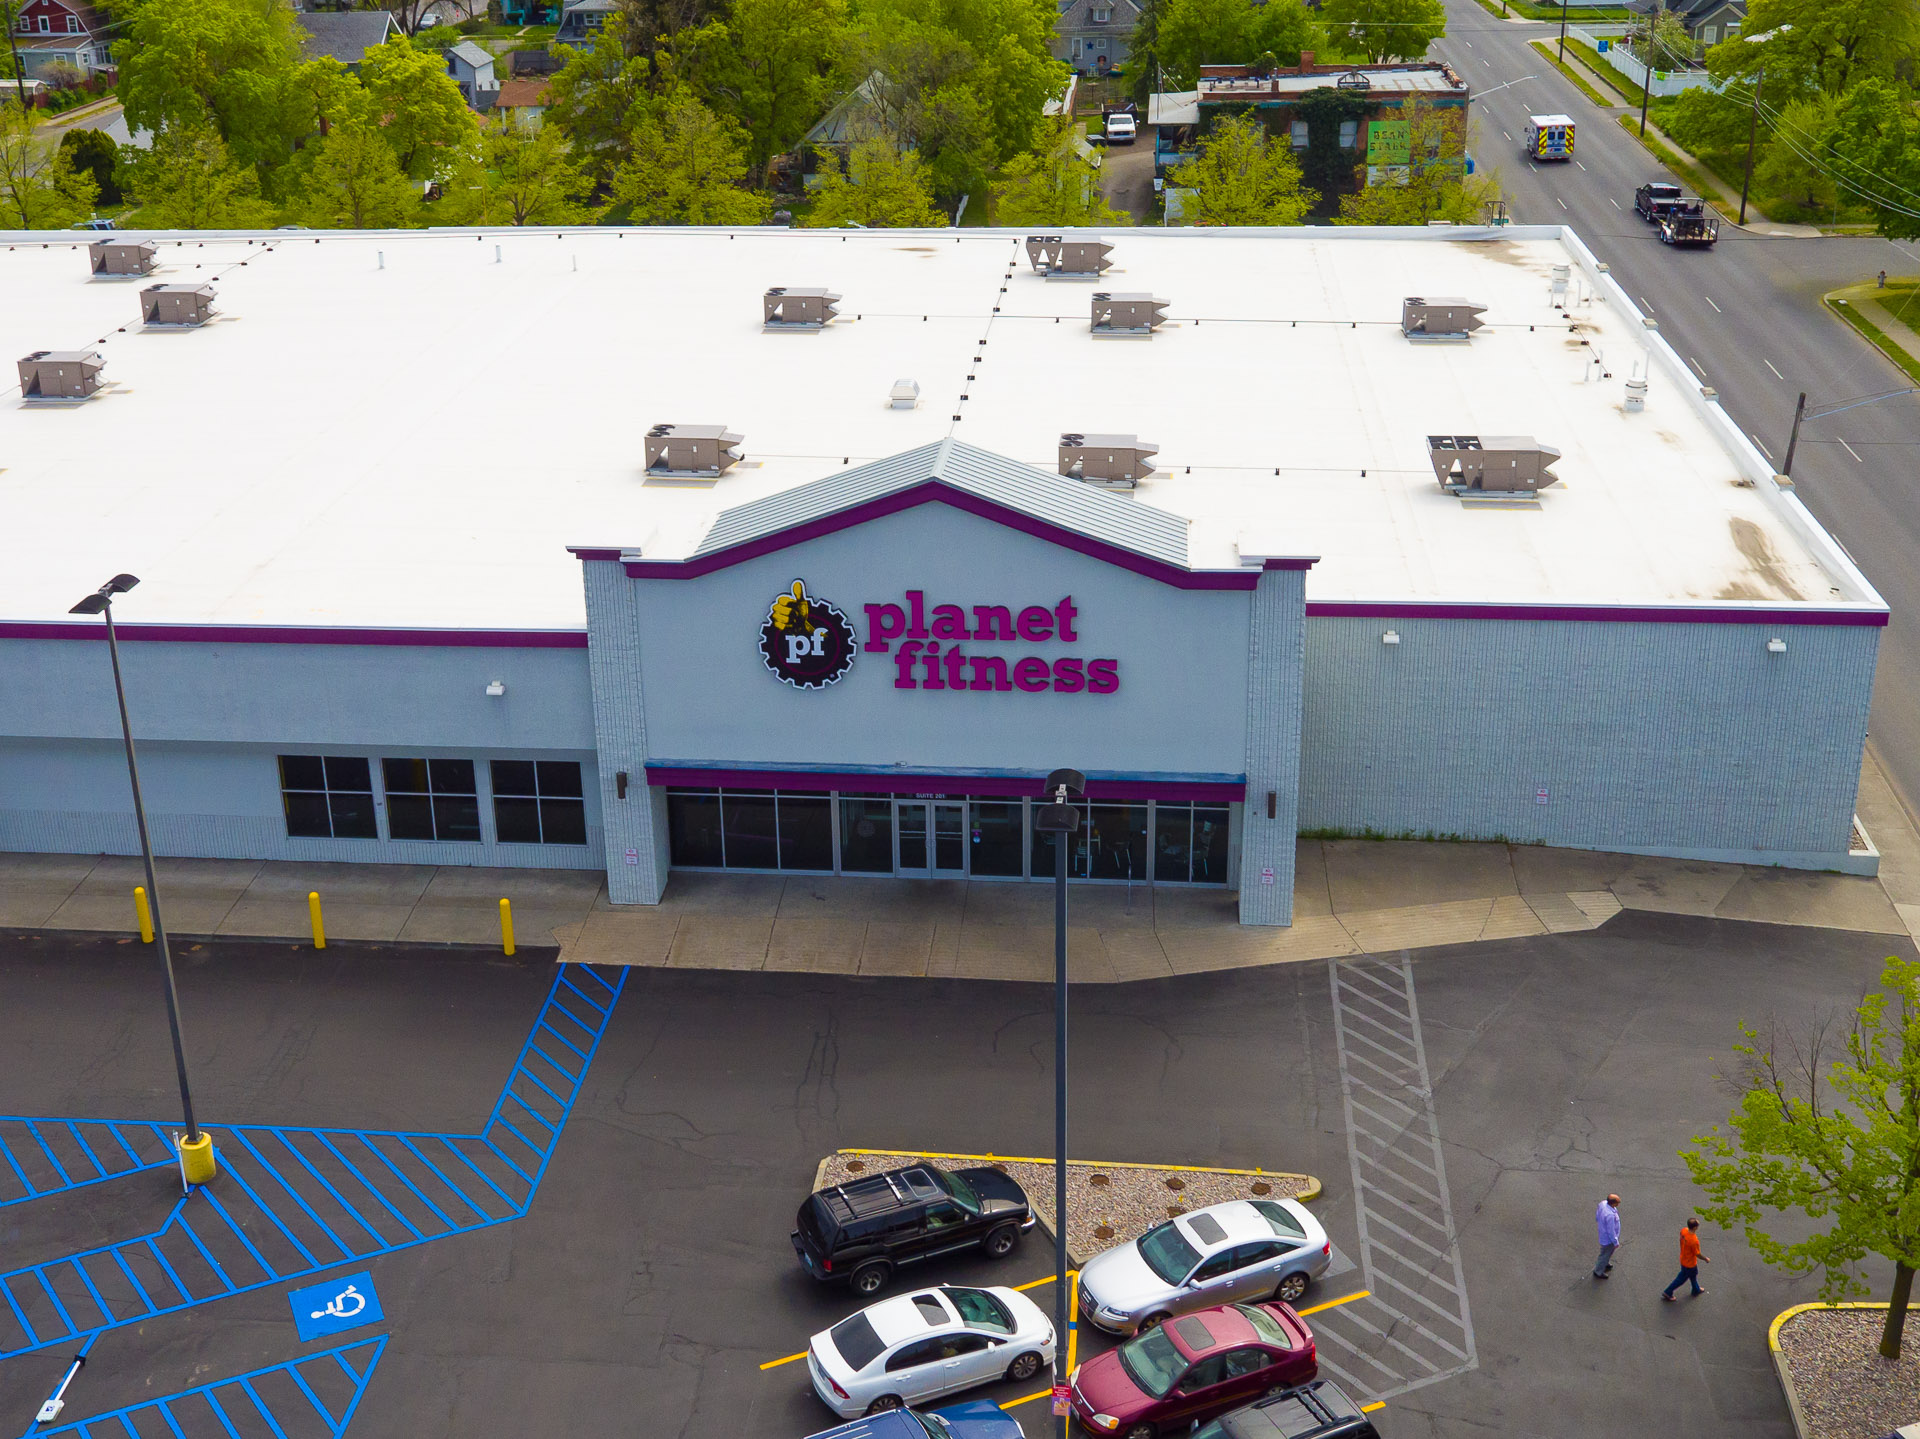 Commercial Drone Photography at Planet Fitness